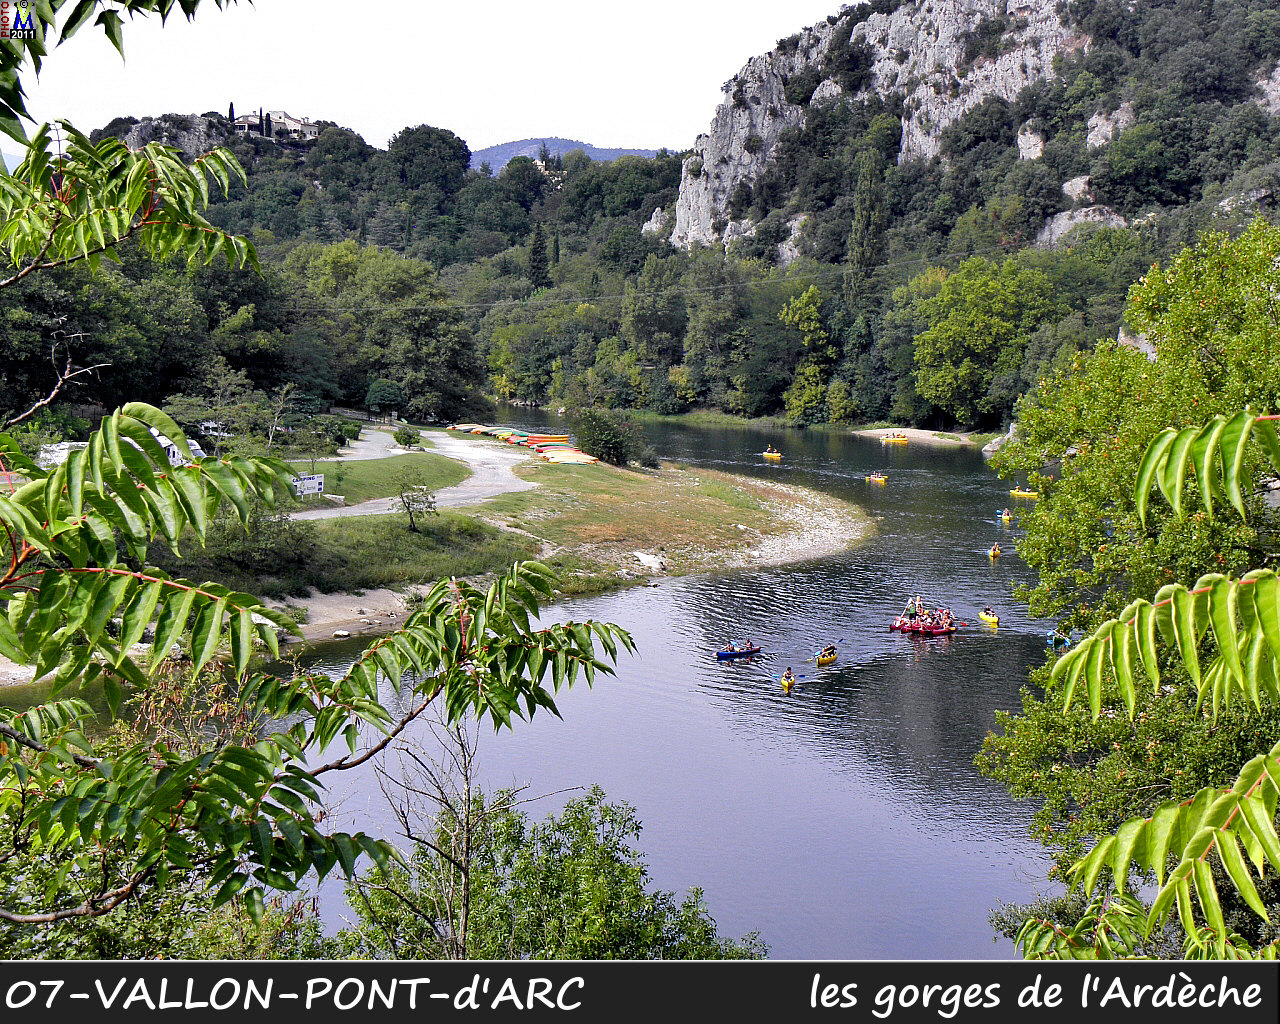 07VALLON-PONT-ARC_gorges_100.jpg